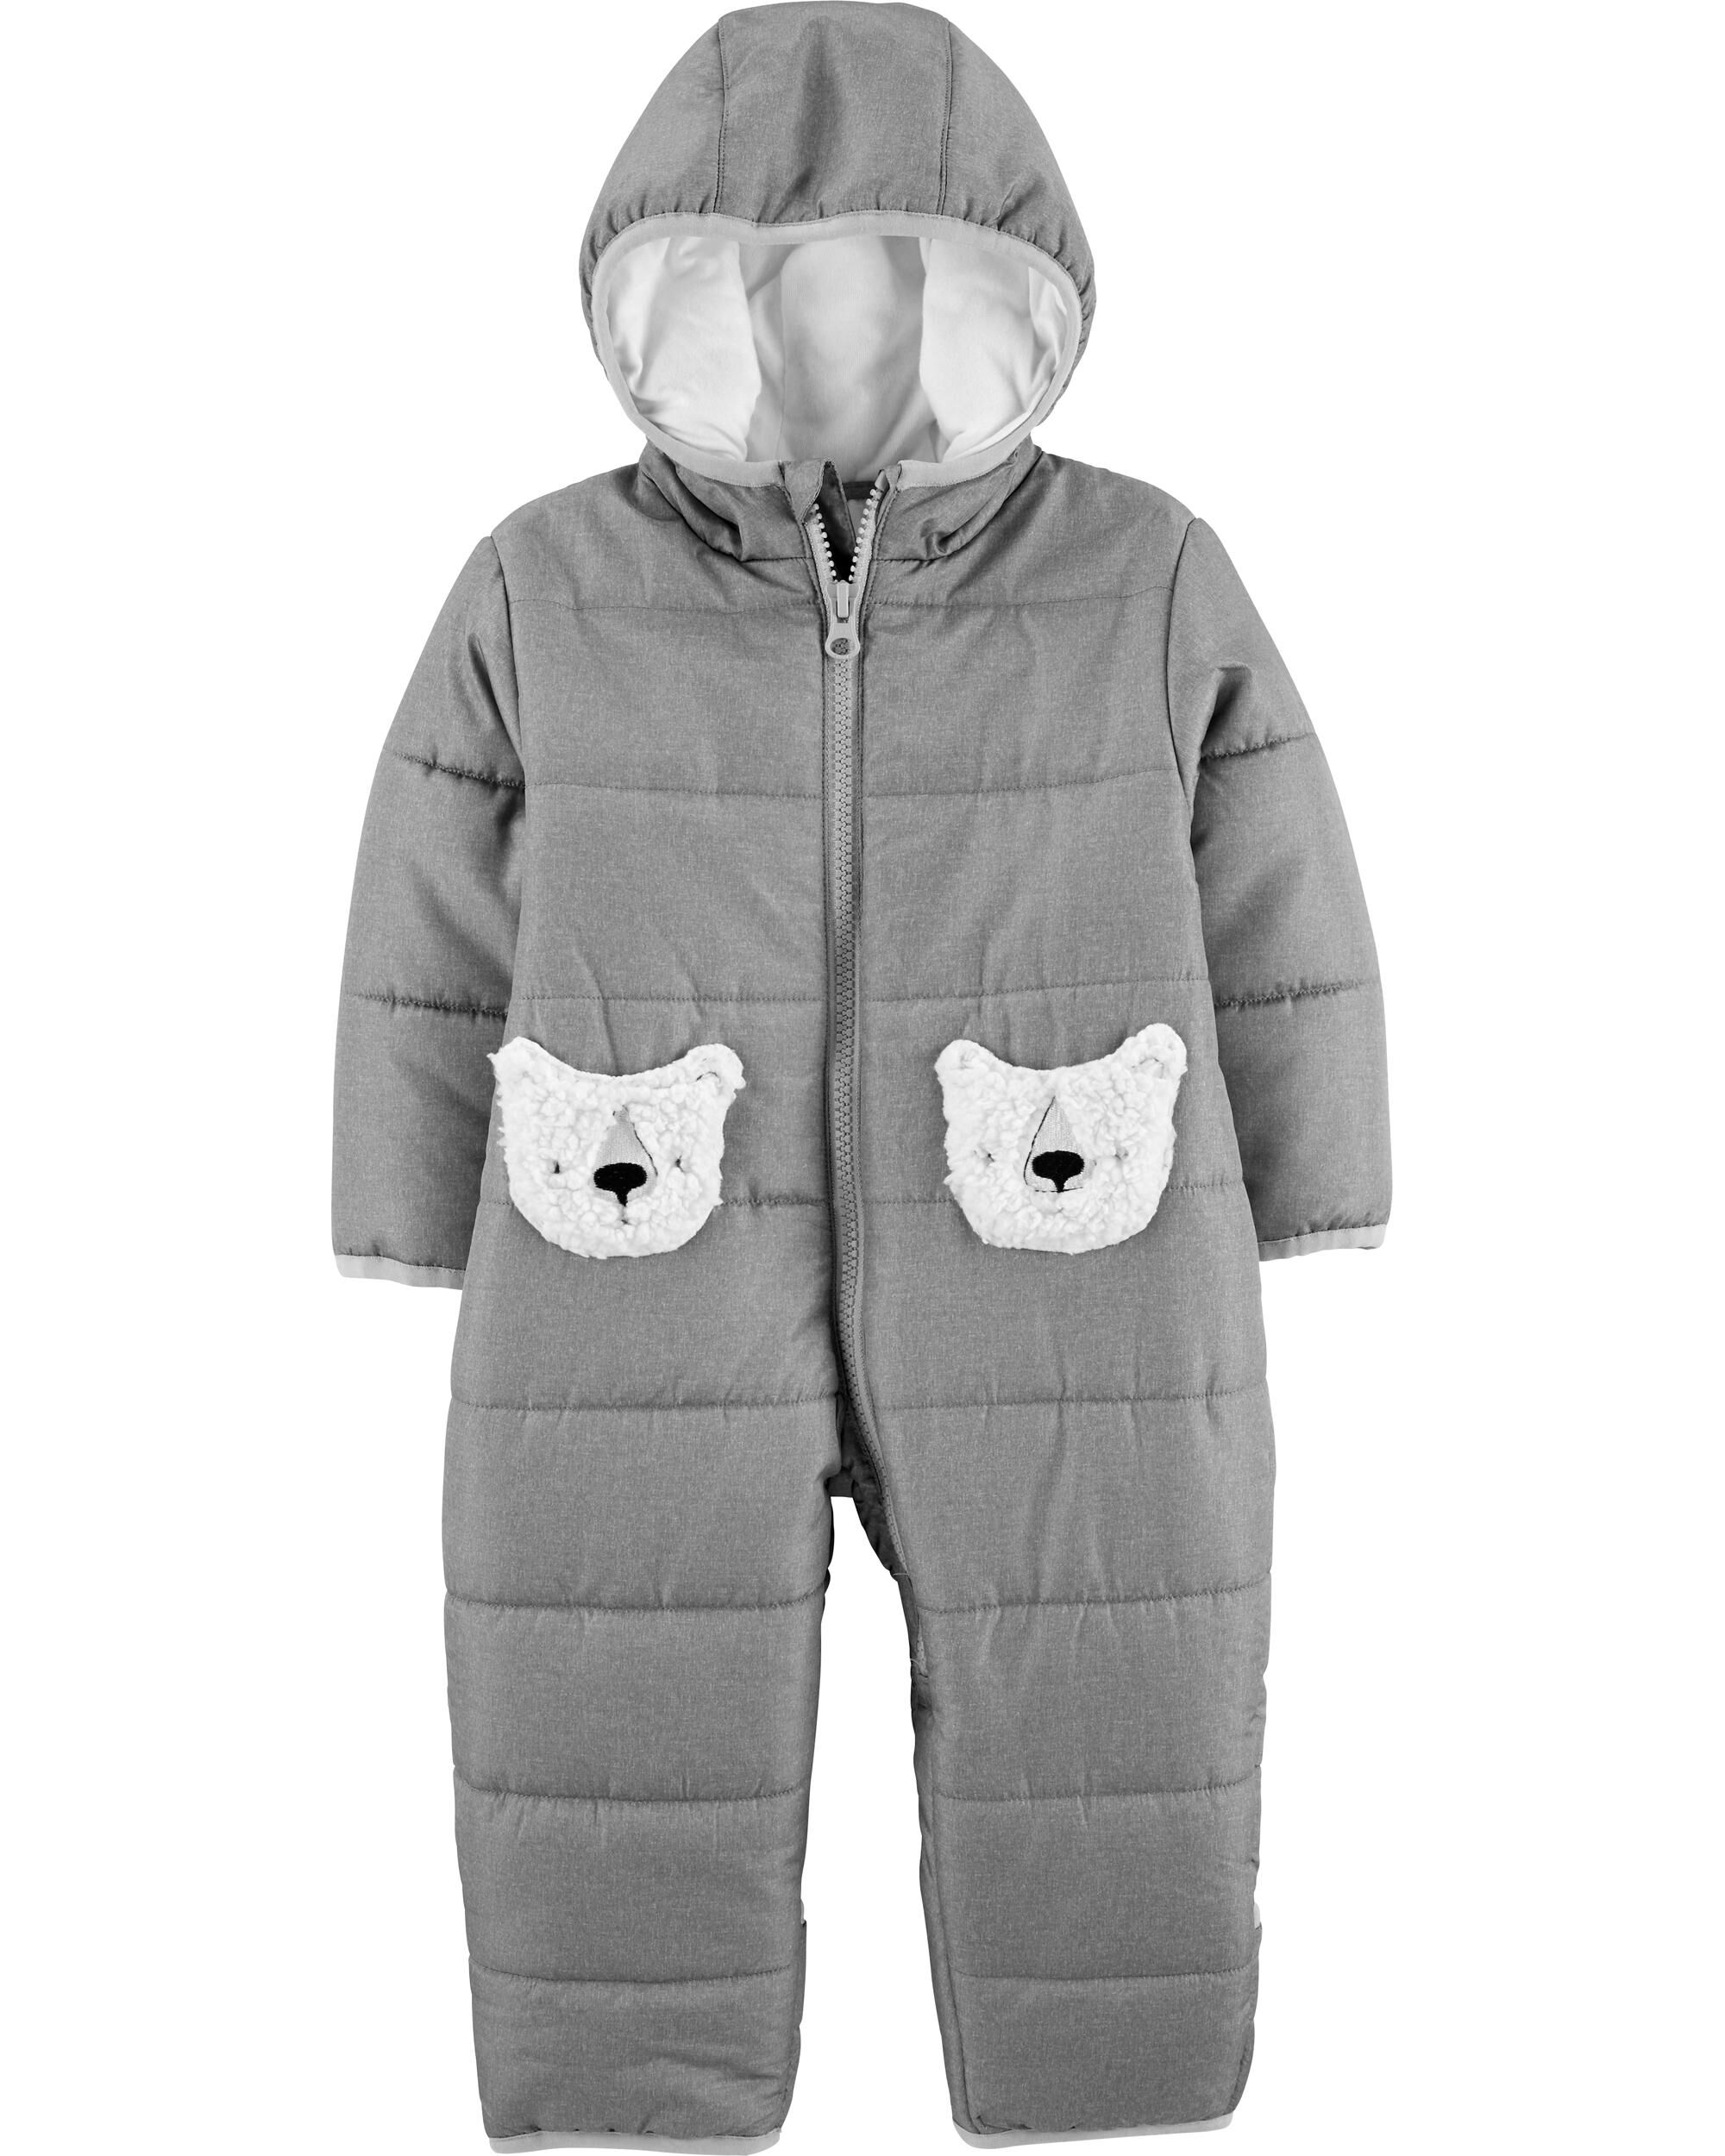 Solid Chara teddy Men's parka long winter jacket with hood and teddy lining Black 0 3 Months